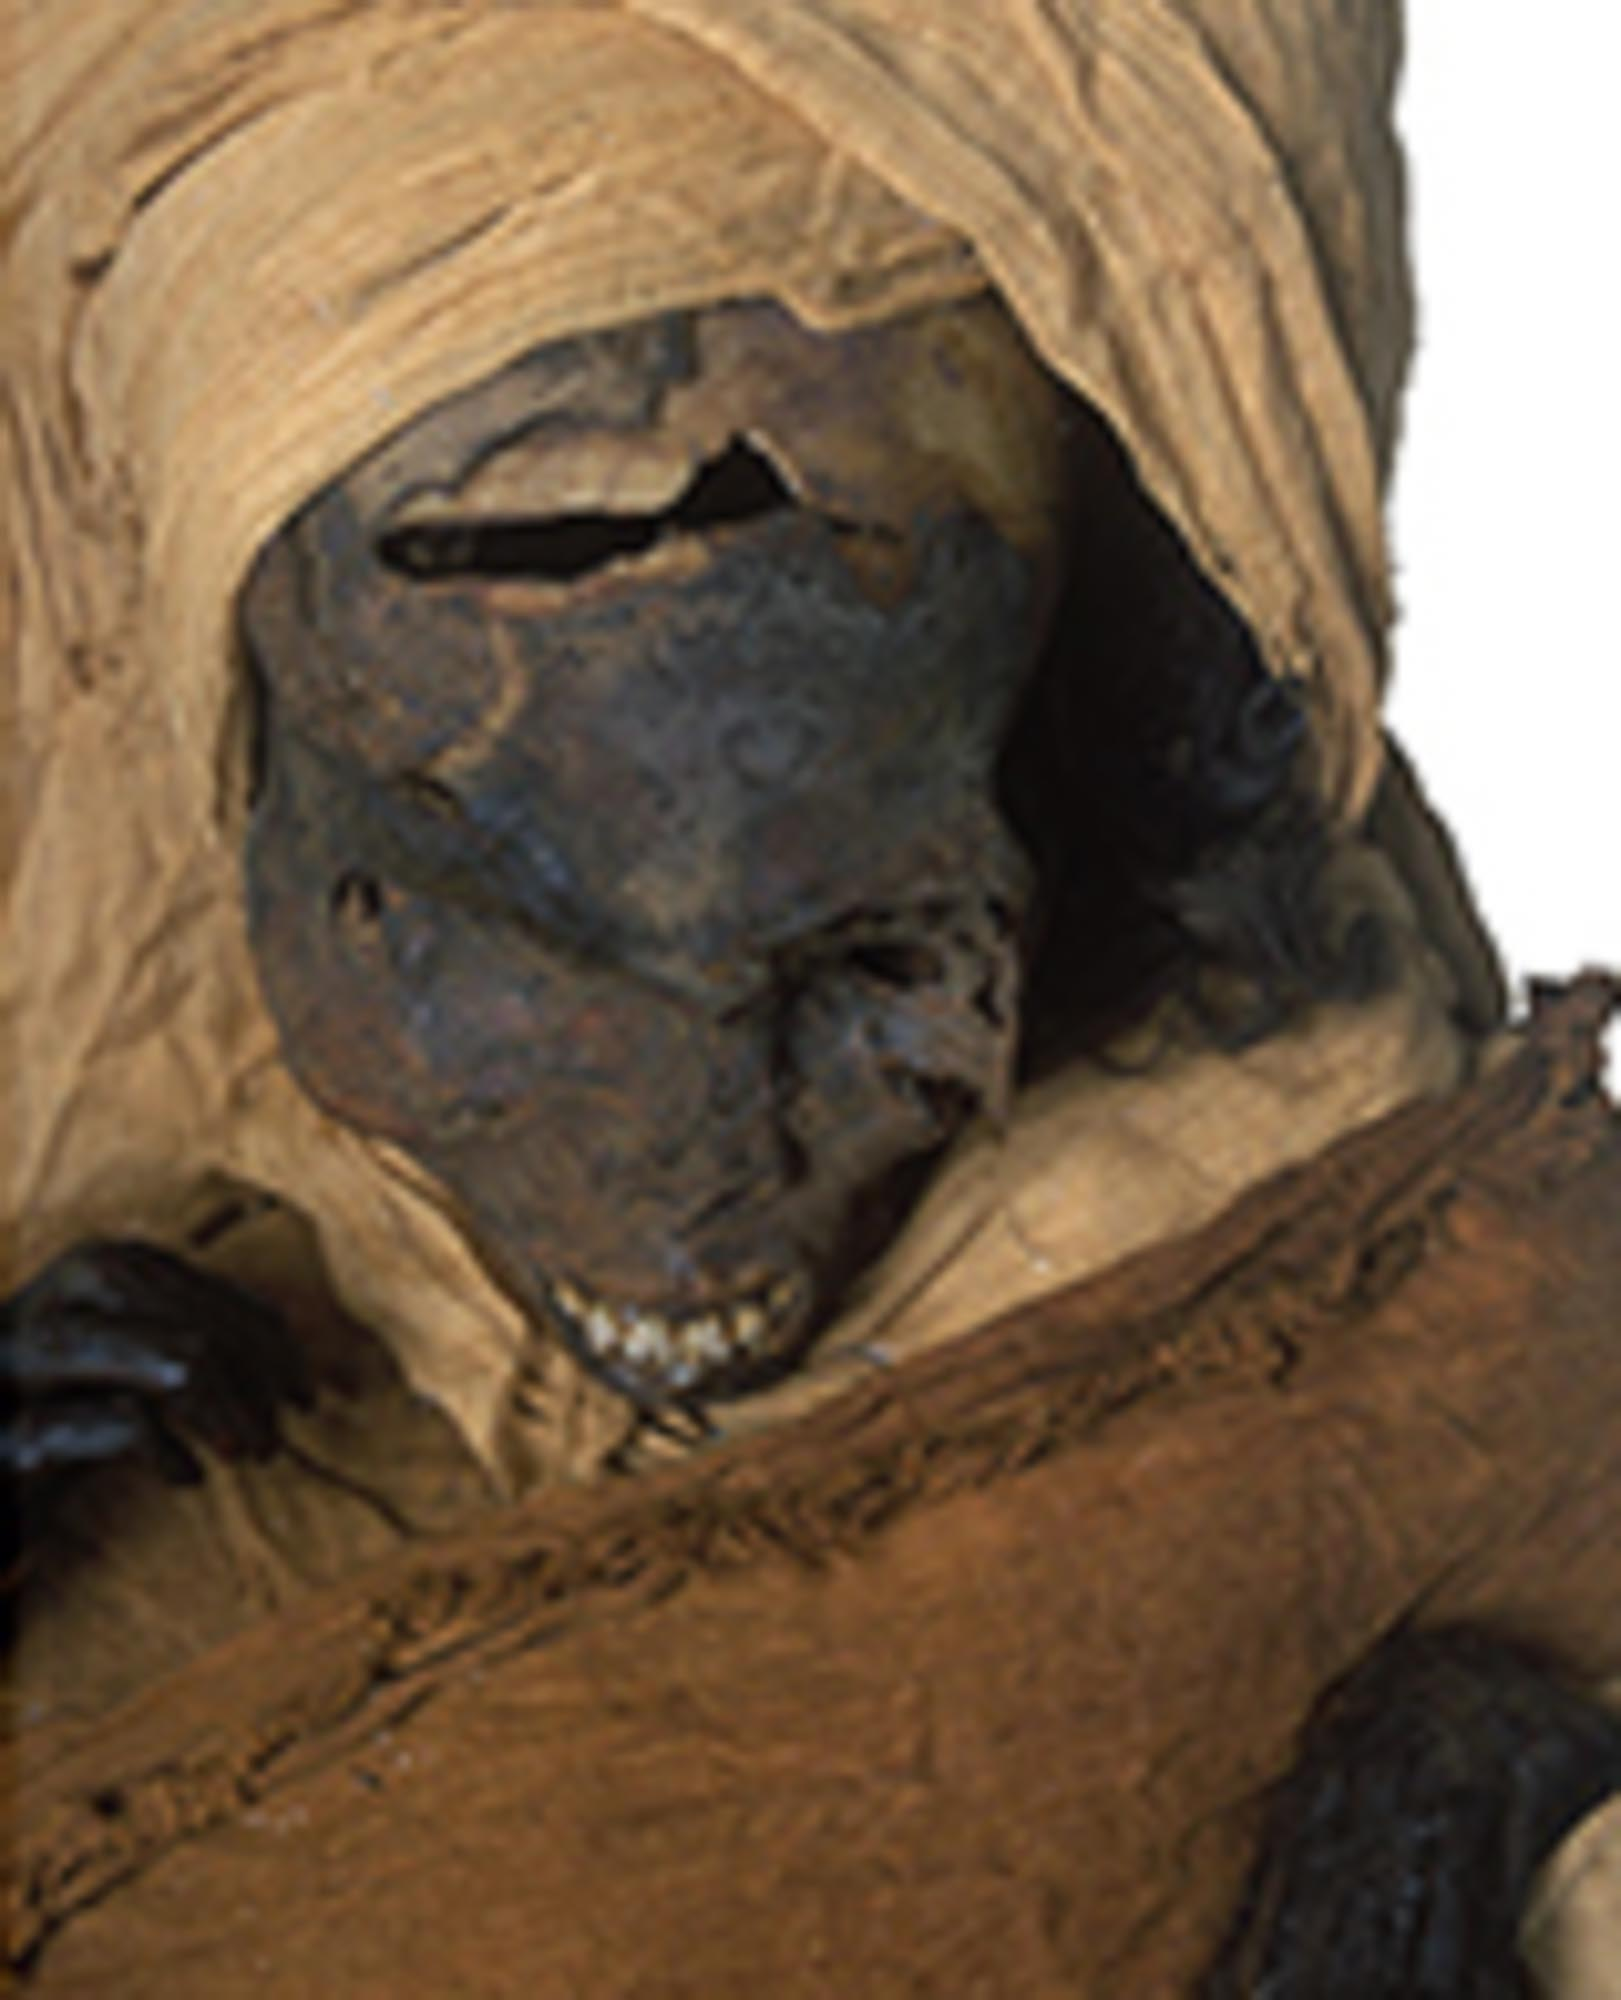 The mummy's tortured skull can be seen here